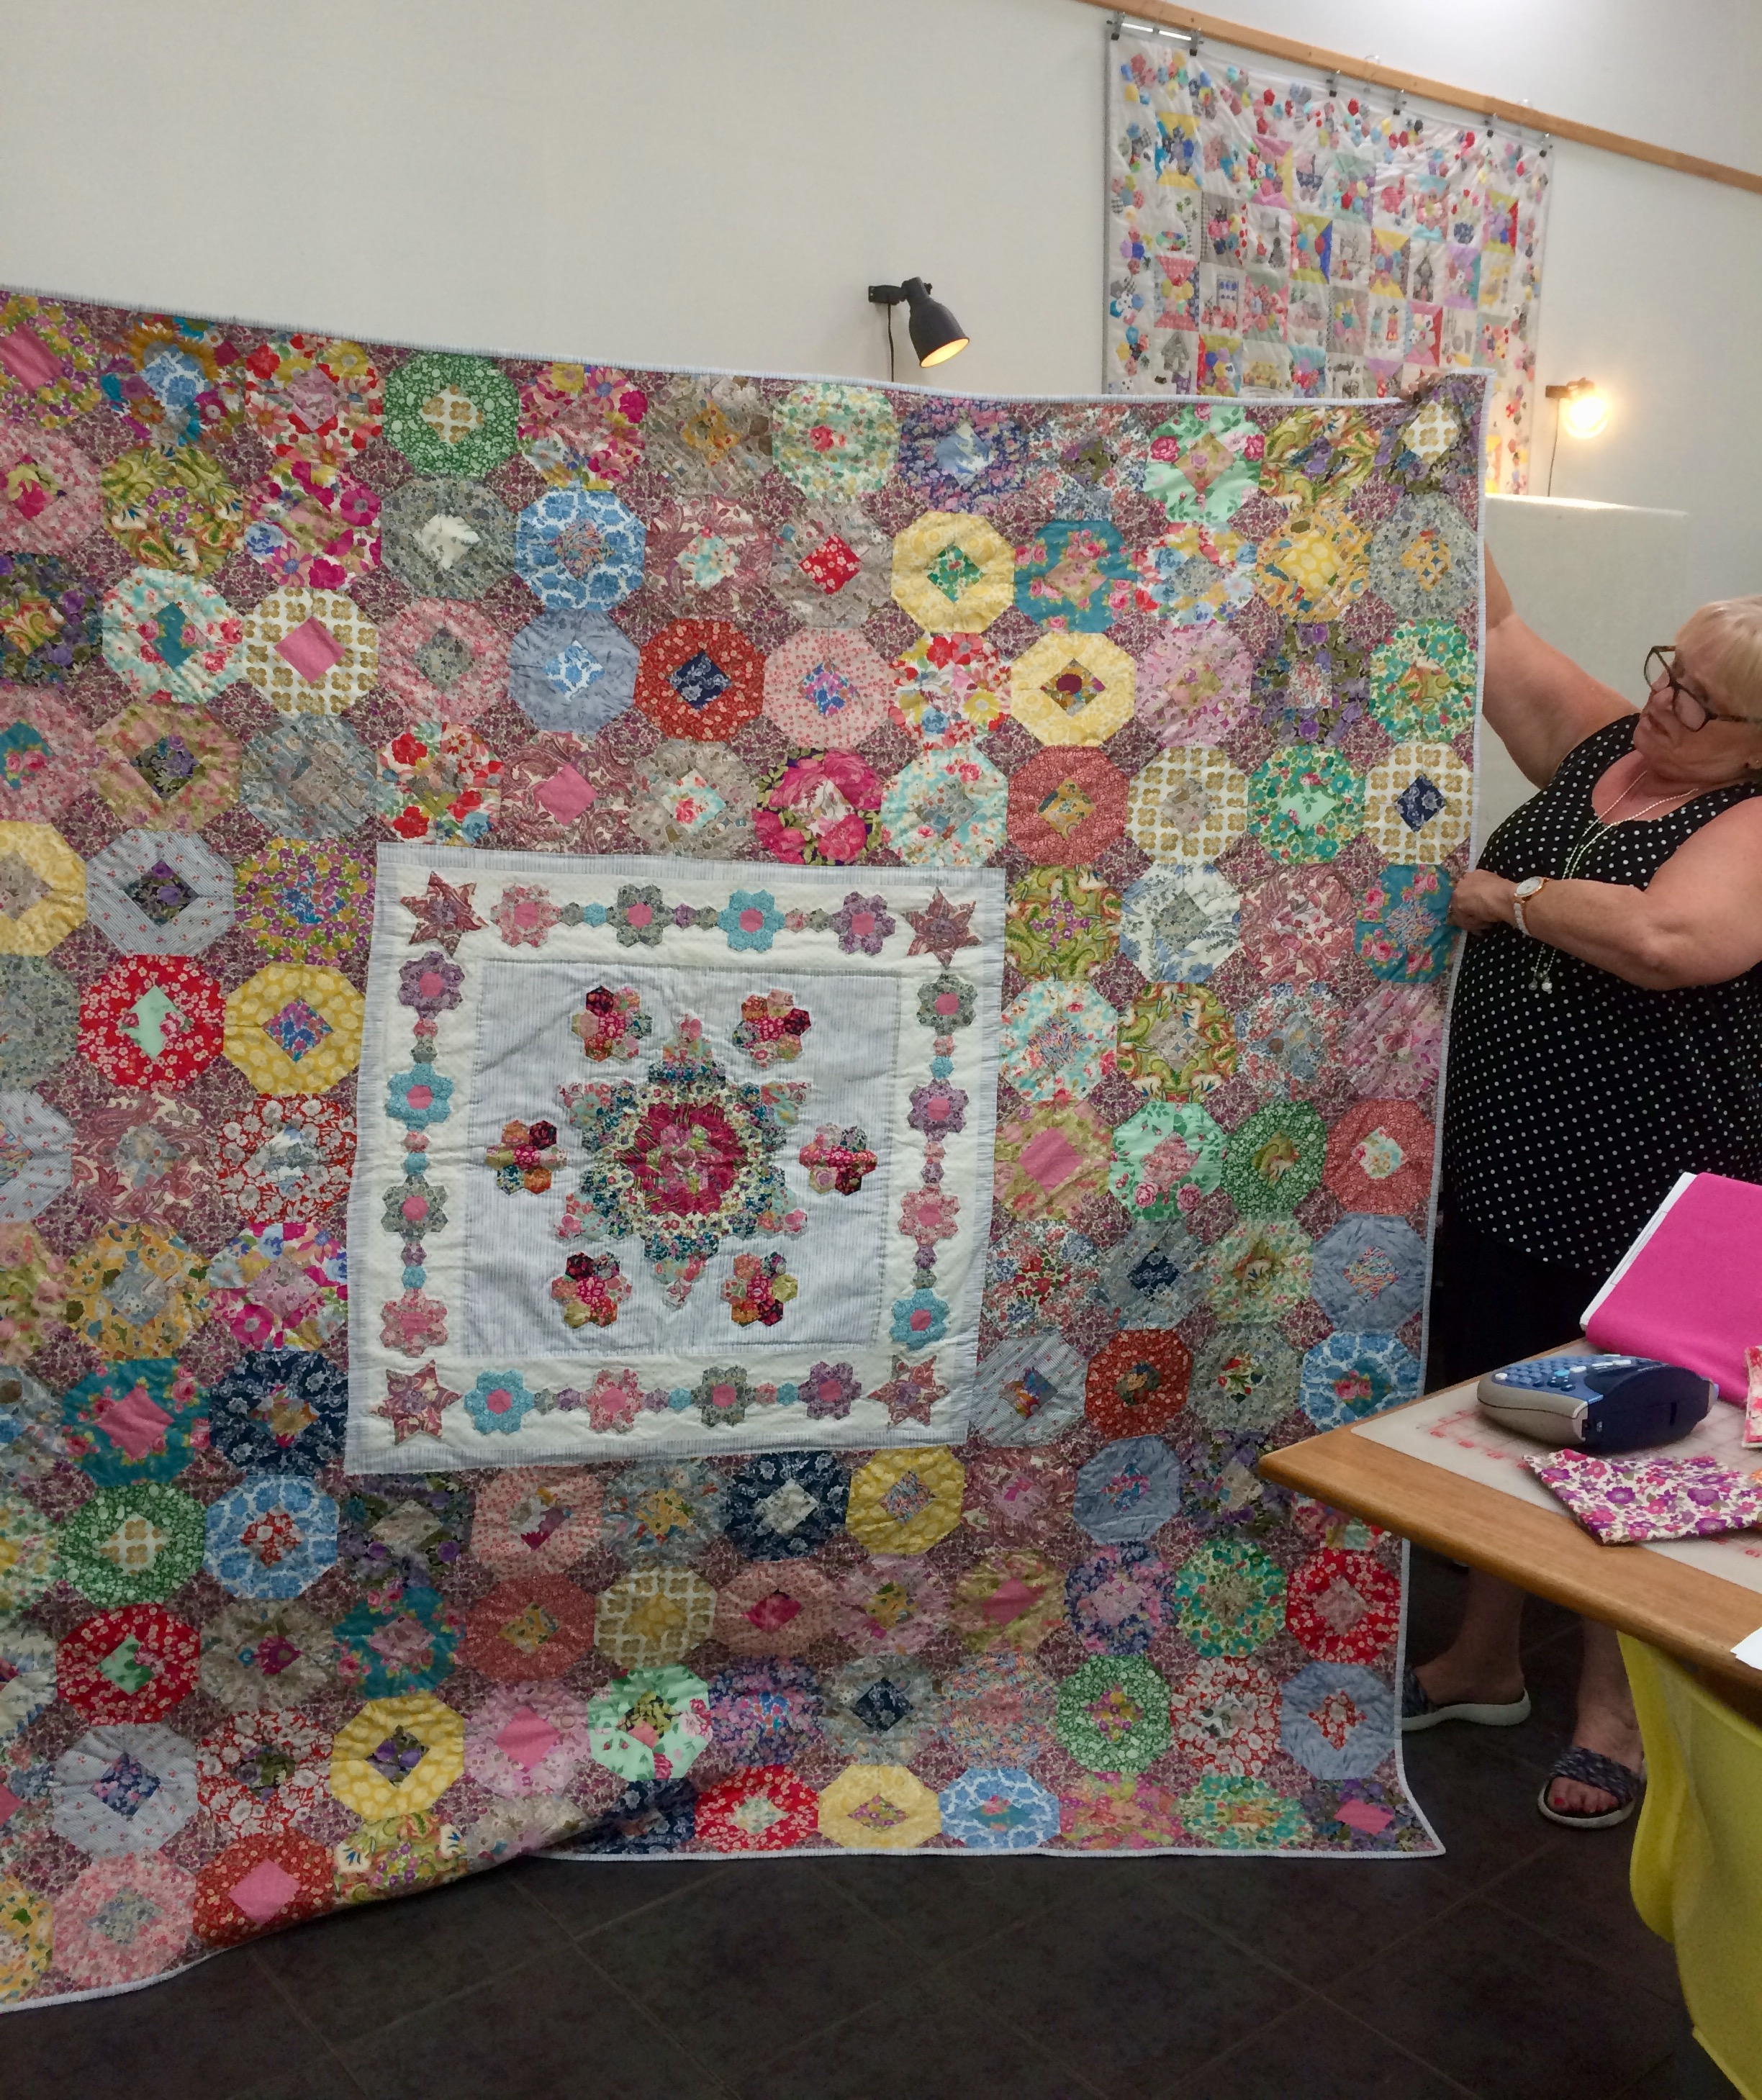 Mary-Ann's Emma Mary quilt is quilted, and looks amazing.